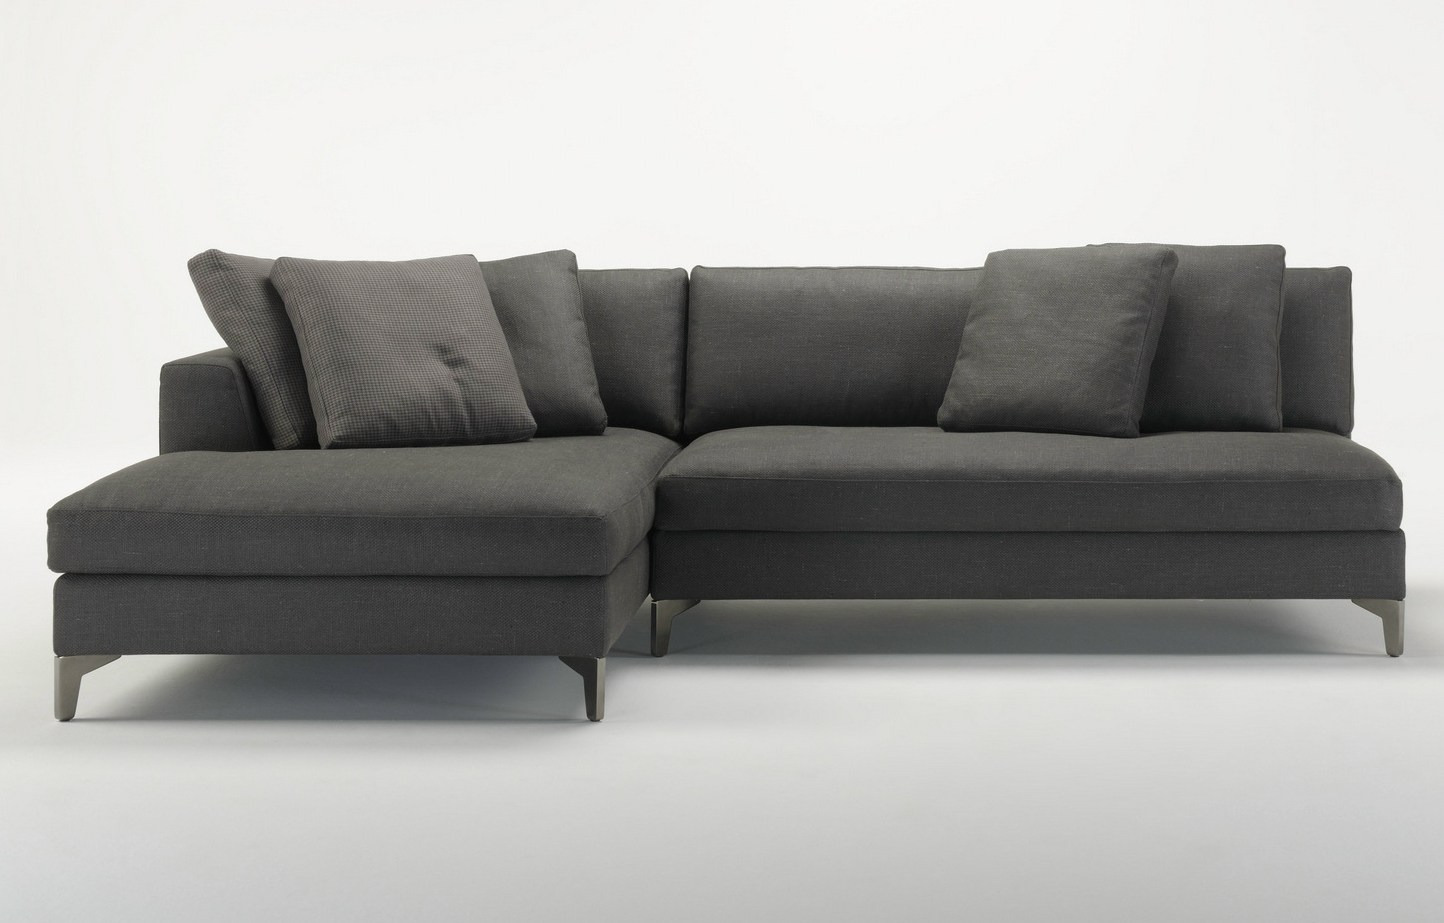 Louis up modular sofa by meridiani for Sofas modulares baratos